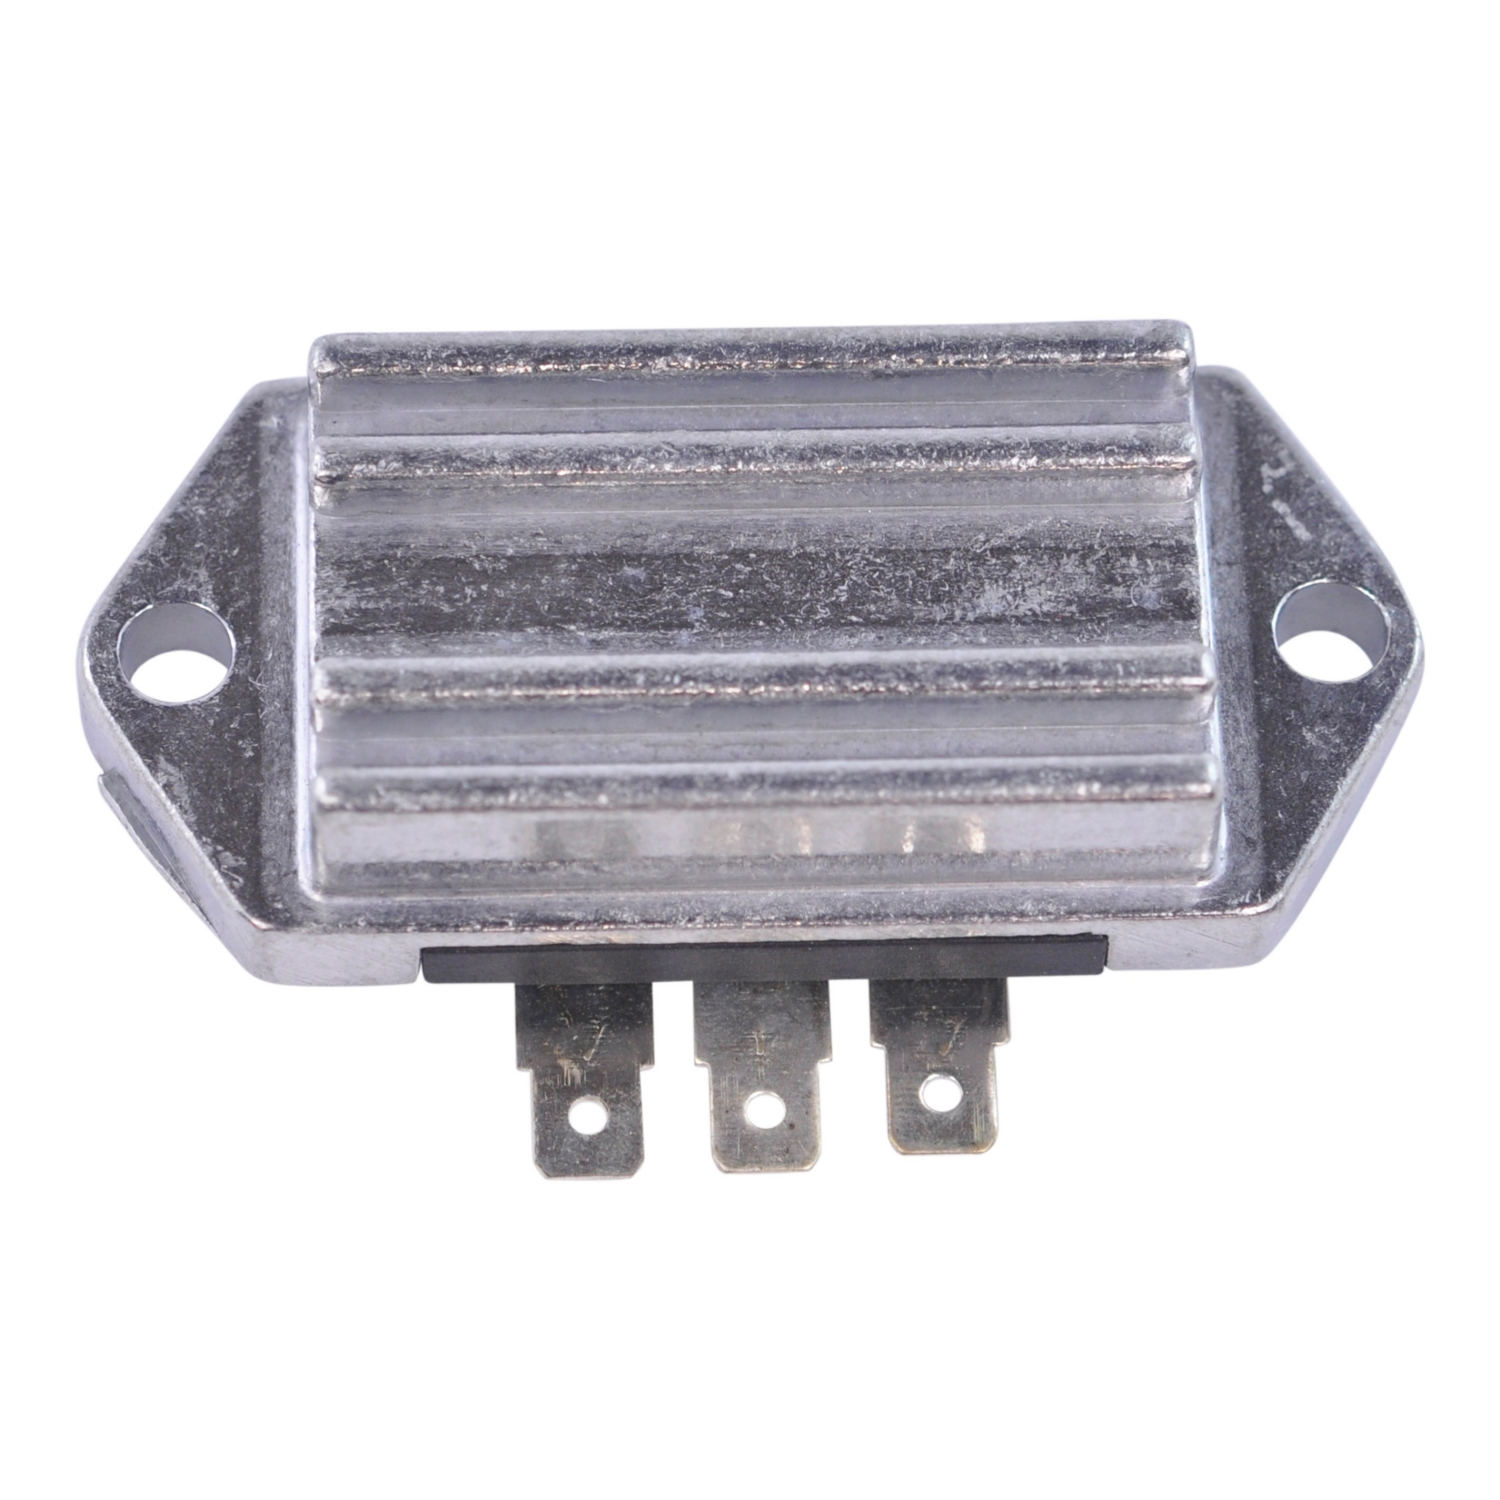 hight resolution of kimpex hd oem voltage regulator rectifier standard john deere 289048 289048 walmart com